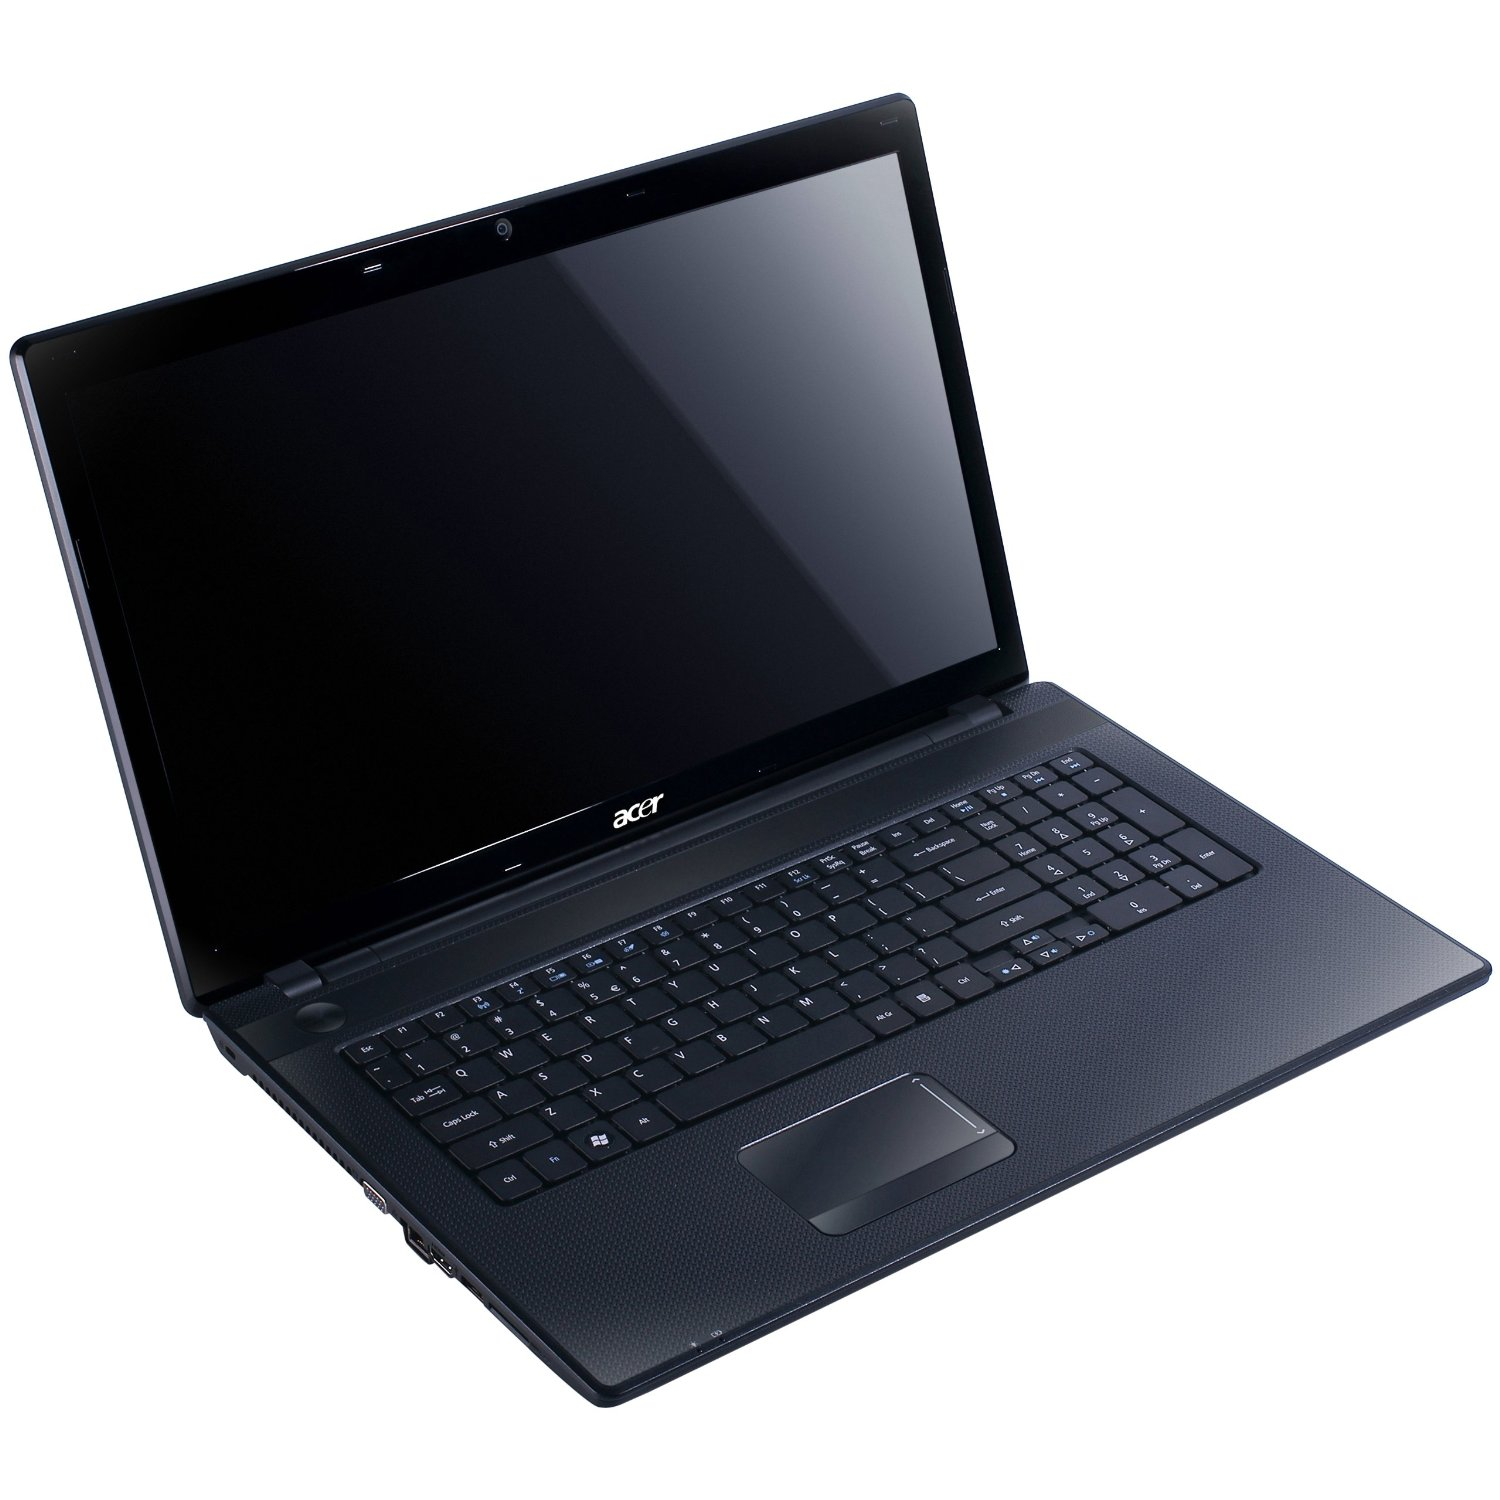 ACER ASPIRE 7739G REALTEK WLAN DRIVERS WINDOWS